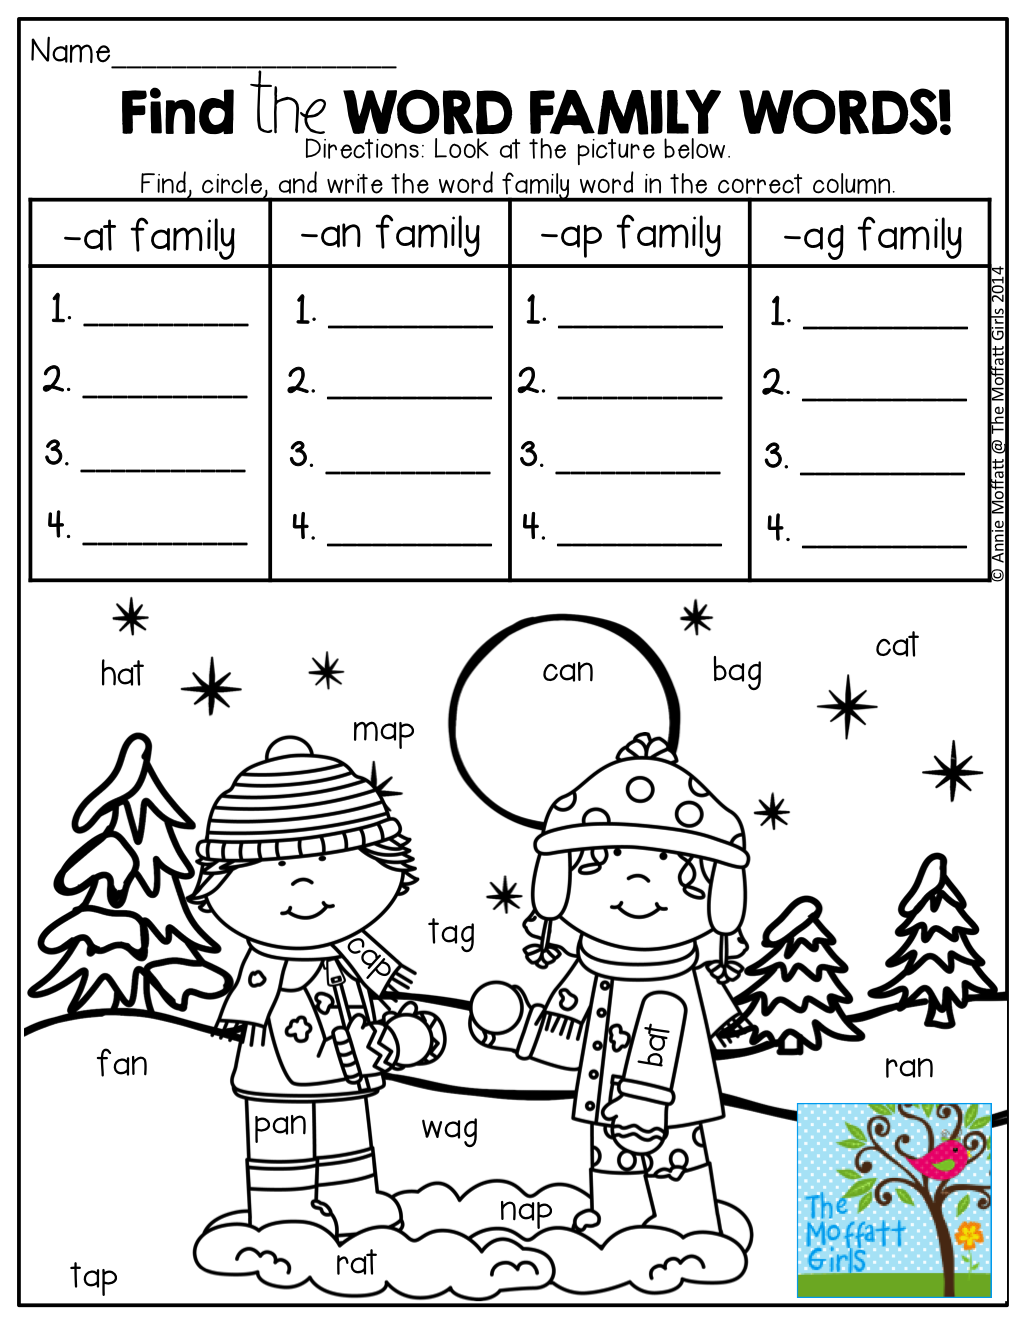 Find The Word Family Words In The Picture Write Them Under The Correct Column Fun Fun T Word Family Worksheets Kindergarten Literacy Kindergarten Reading